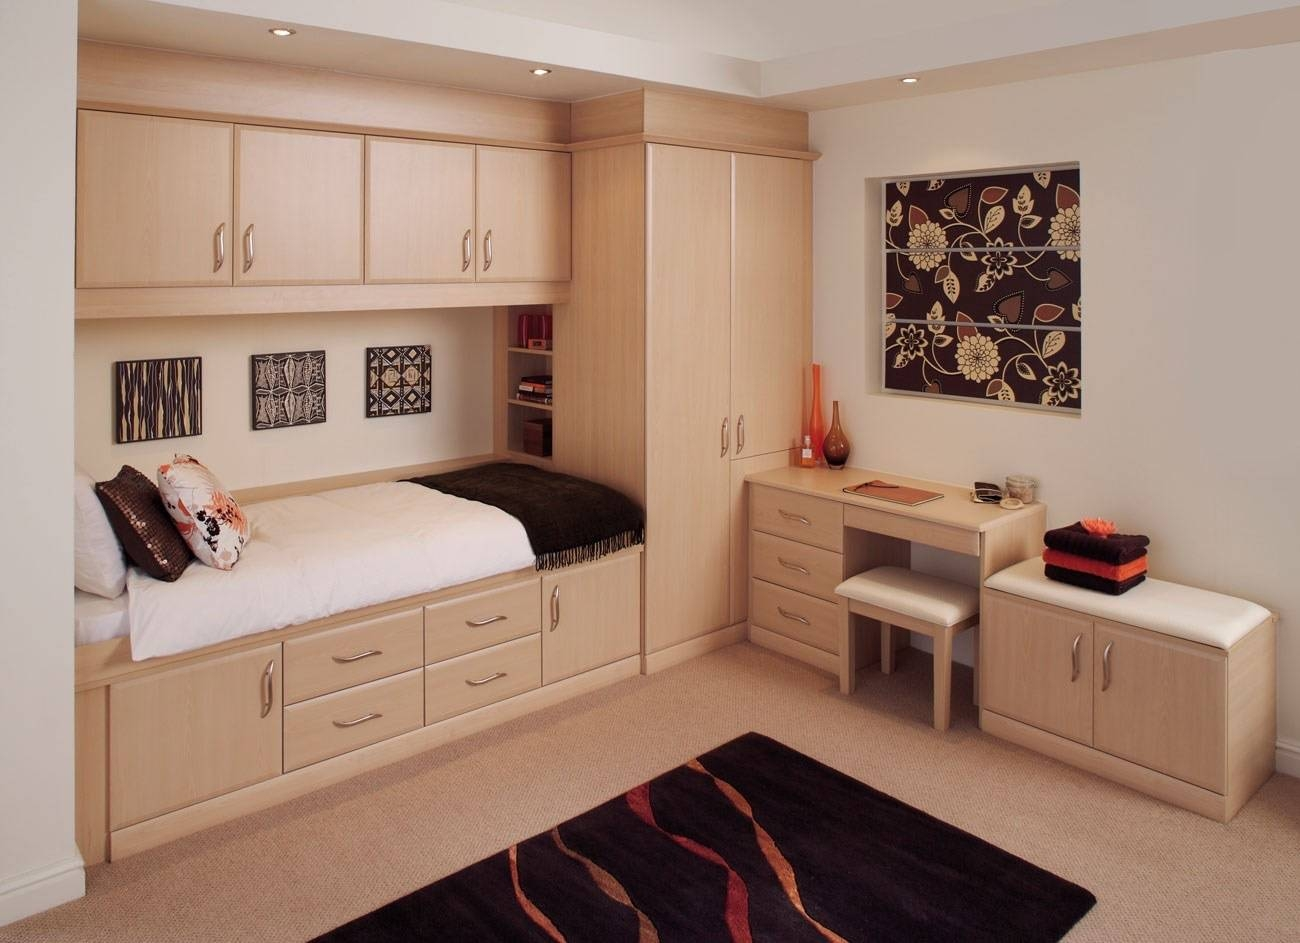 Wondrous Design Ideas Bedroom Fitted Wardrobes Designs 16 Ideal Regarding Drawers For Fitted Wardrobes (View 29 of 30)